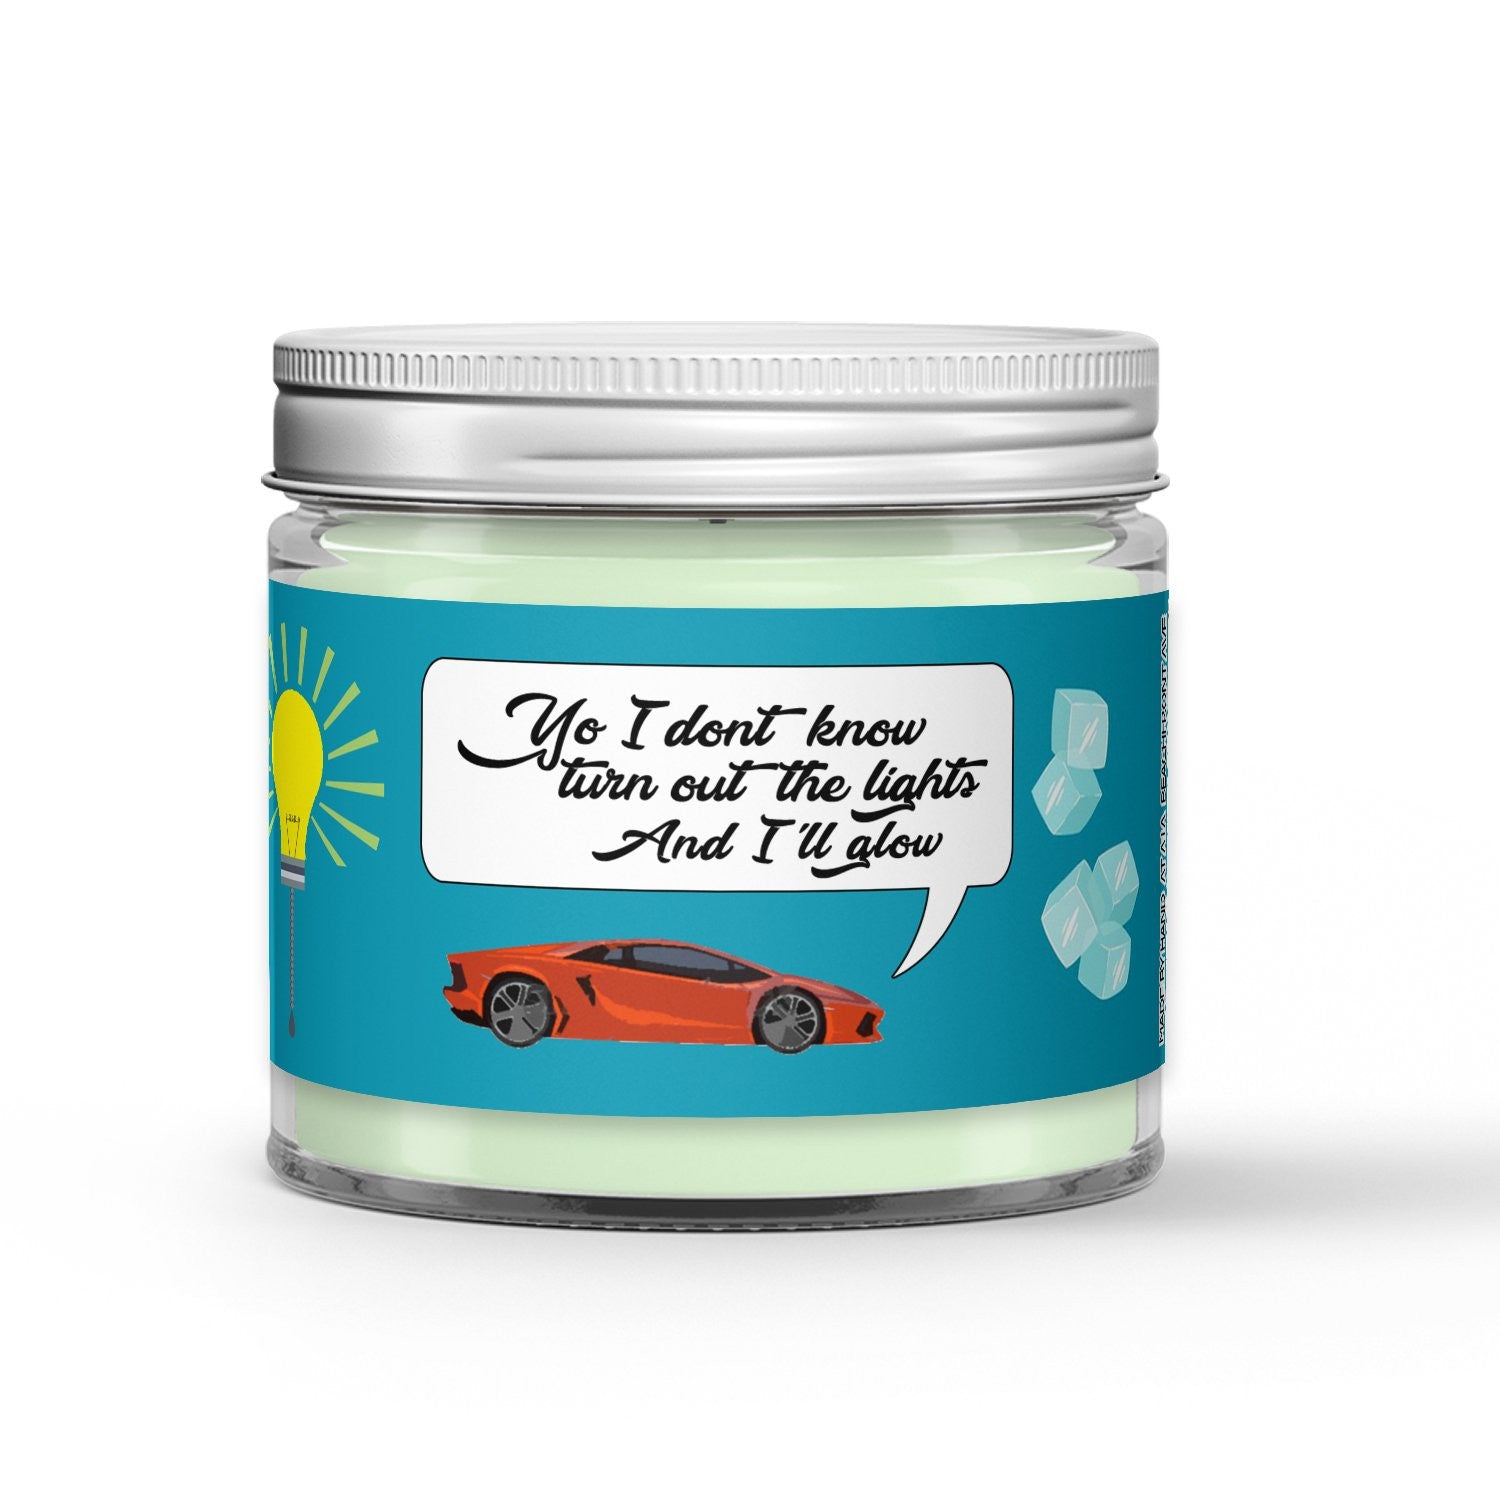 Turn Out The Lights Glow Candle - Vanilla - Mint - Ginger Beer - 1oz Adorable Size Candle® - Dio Candle Company